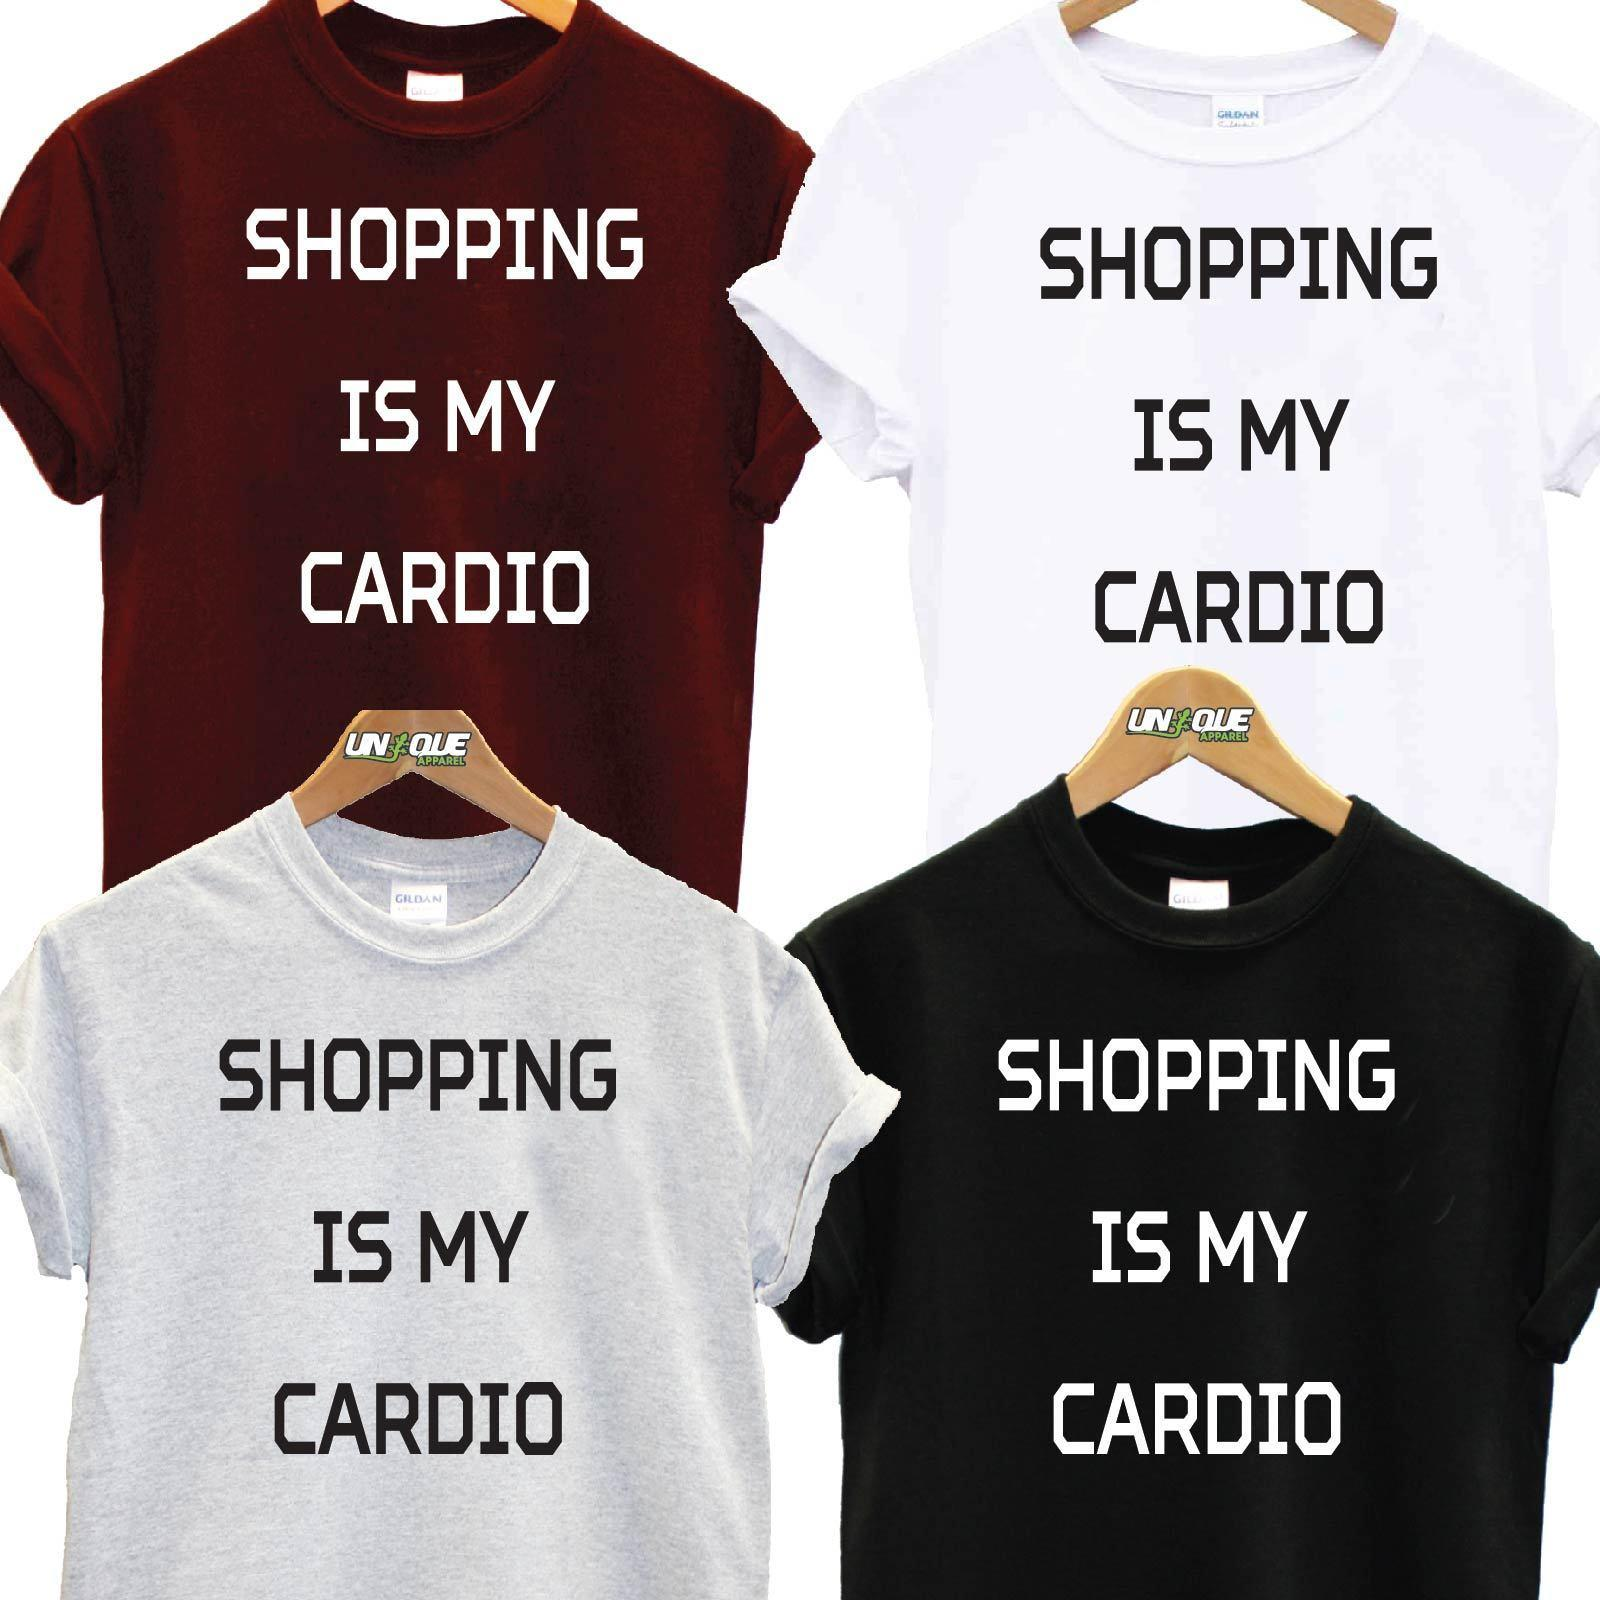 9eb2529fe SHOPPING IS MY CARDIO T SHIRT TOP TEE TUMBLR FASHION GYM FITNESS CHRISTMAS  NEW Funny Unisex Casual Tee Gift Crazy T Shirts Designs Ridiculous T Shirt  From ...